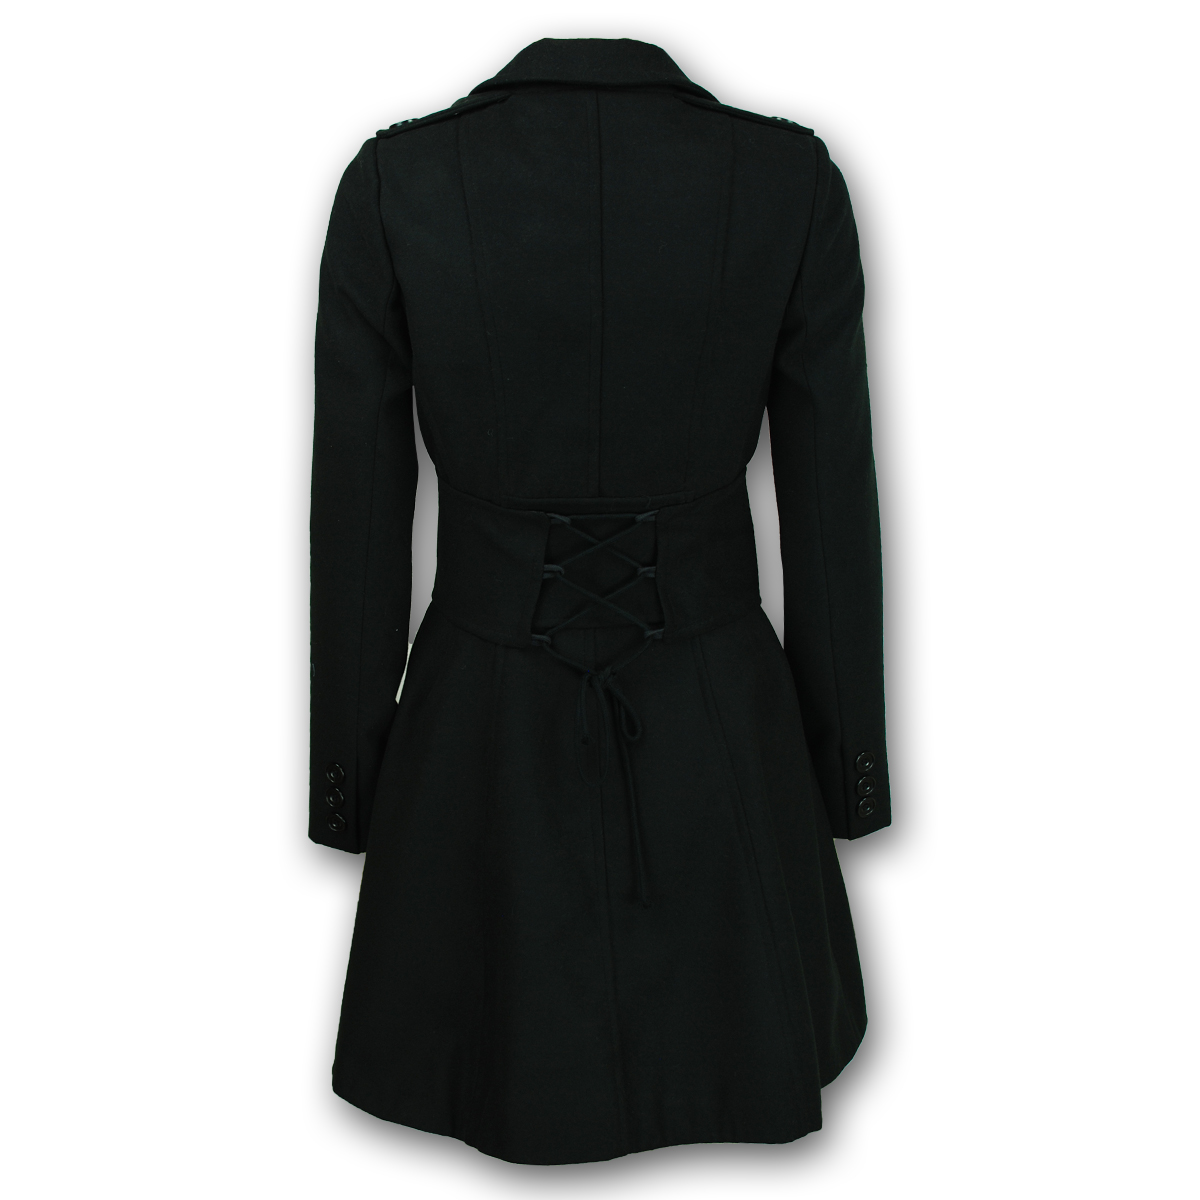 Ladies-Coat-Womens-Jacket-Wool-Look-Military-Long-Button-Warm-Winter-Lined-New